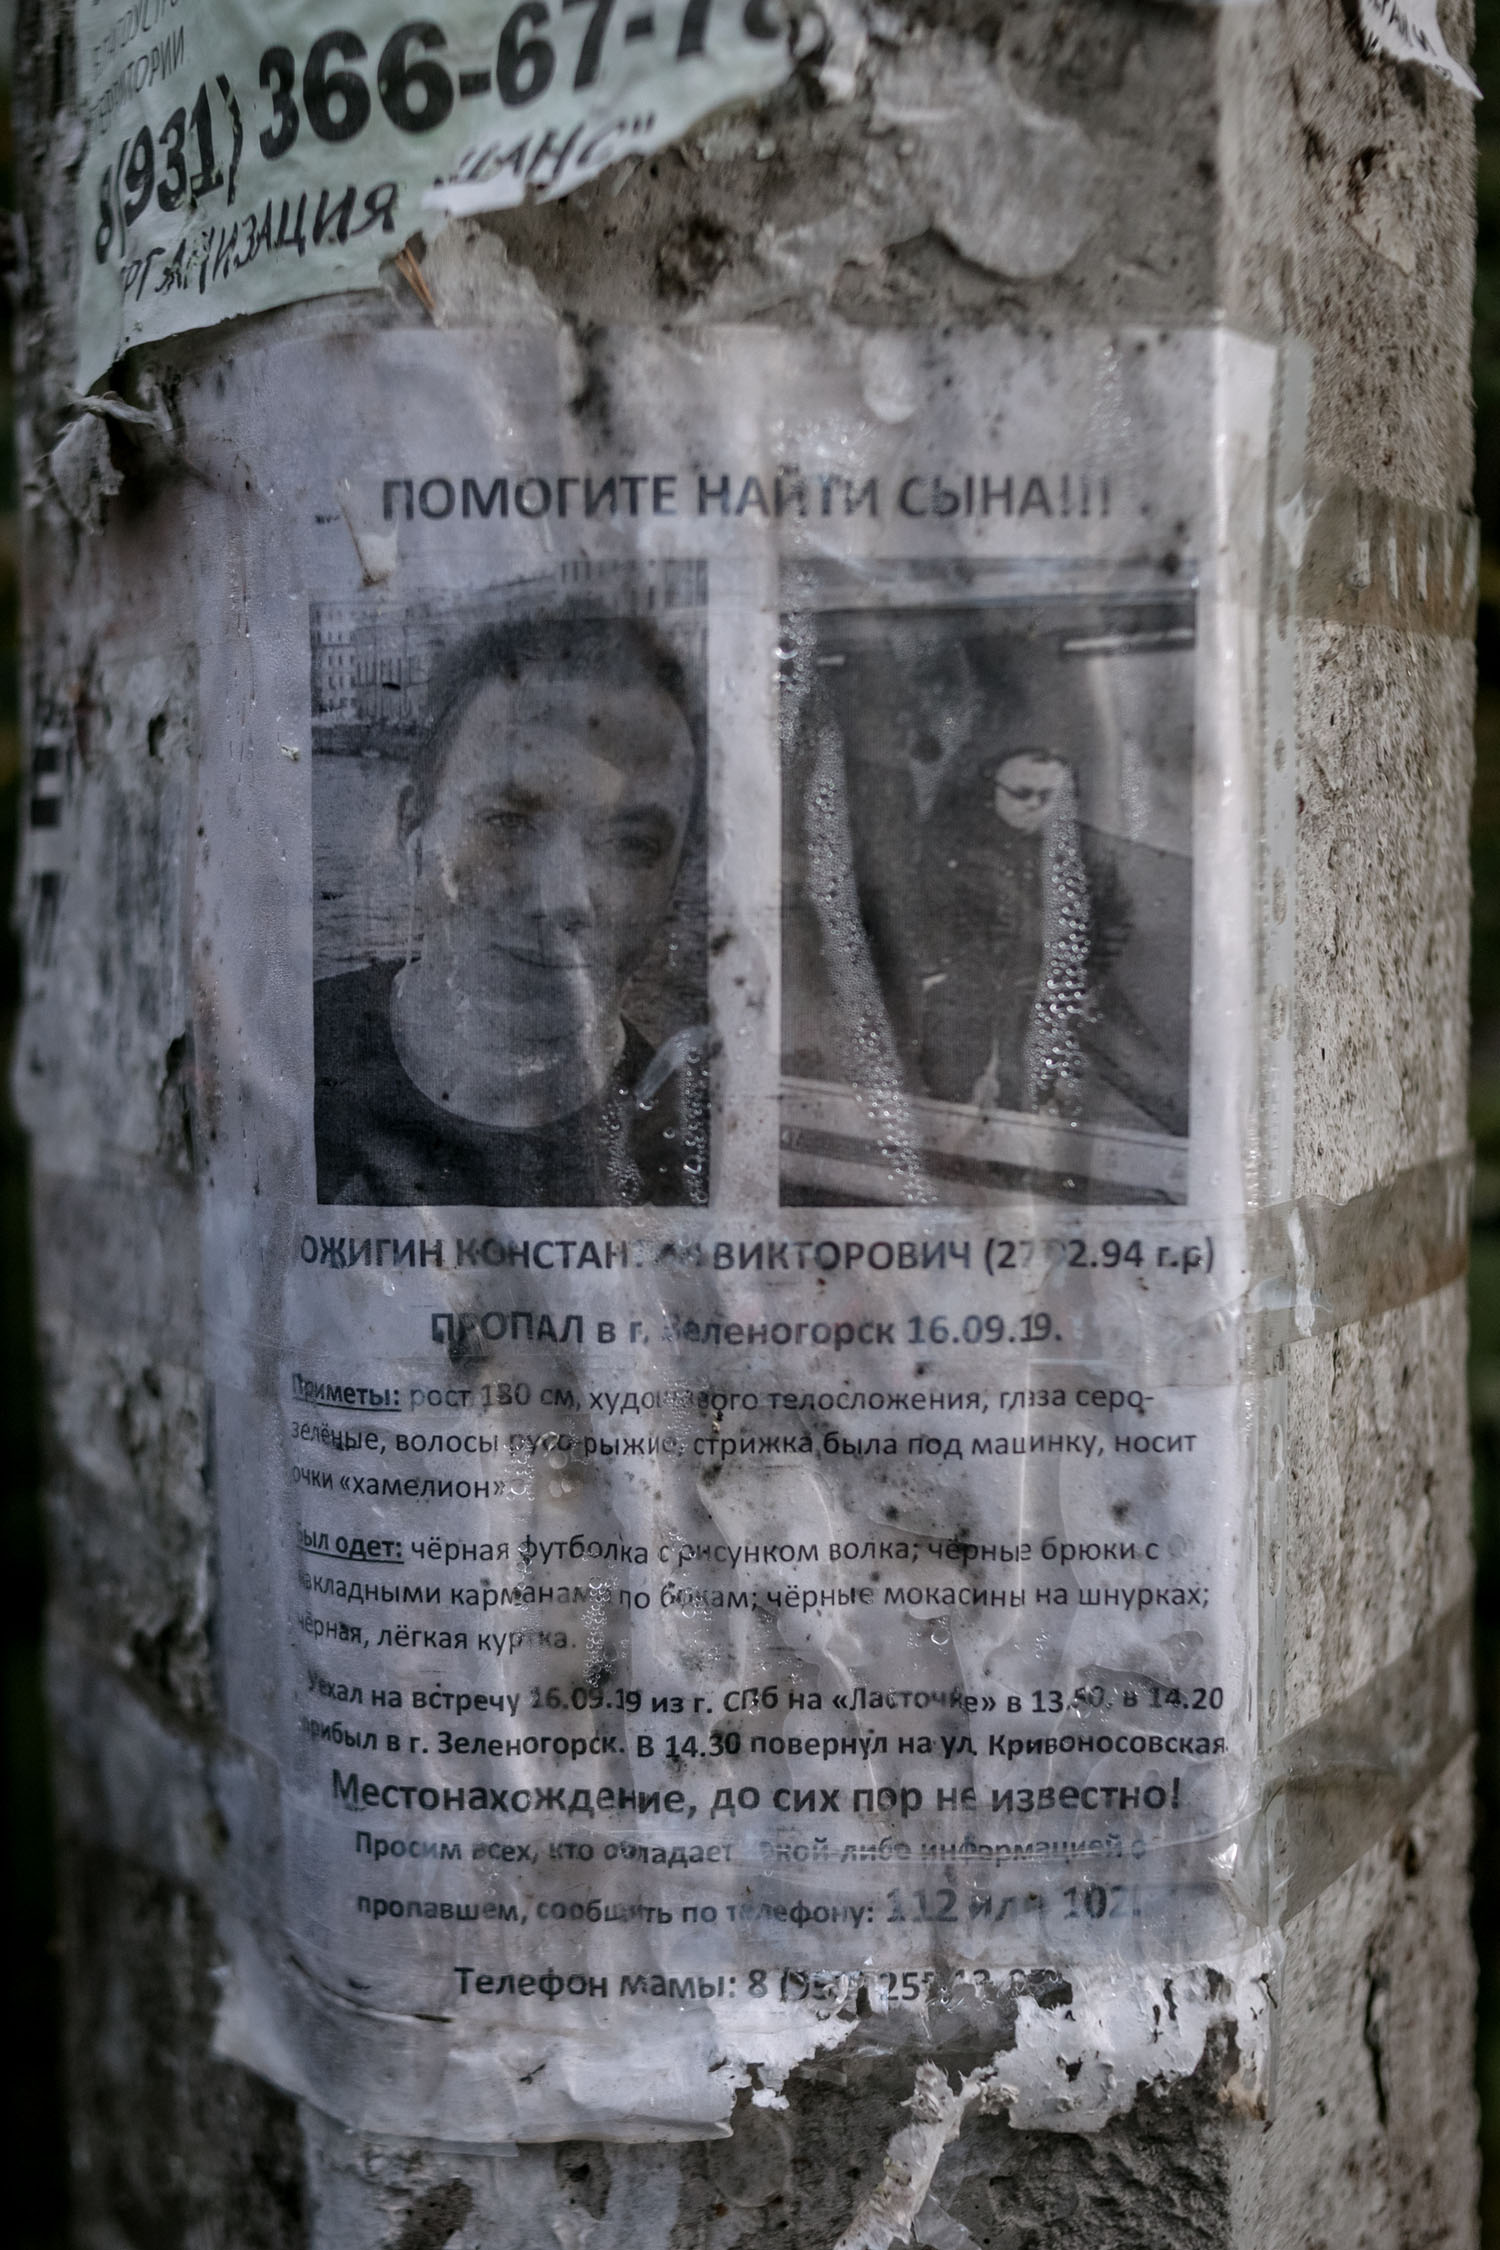 Poster printed by relatives of the missing teenager. The search continues in Zelenogorsk for more than a year.